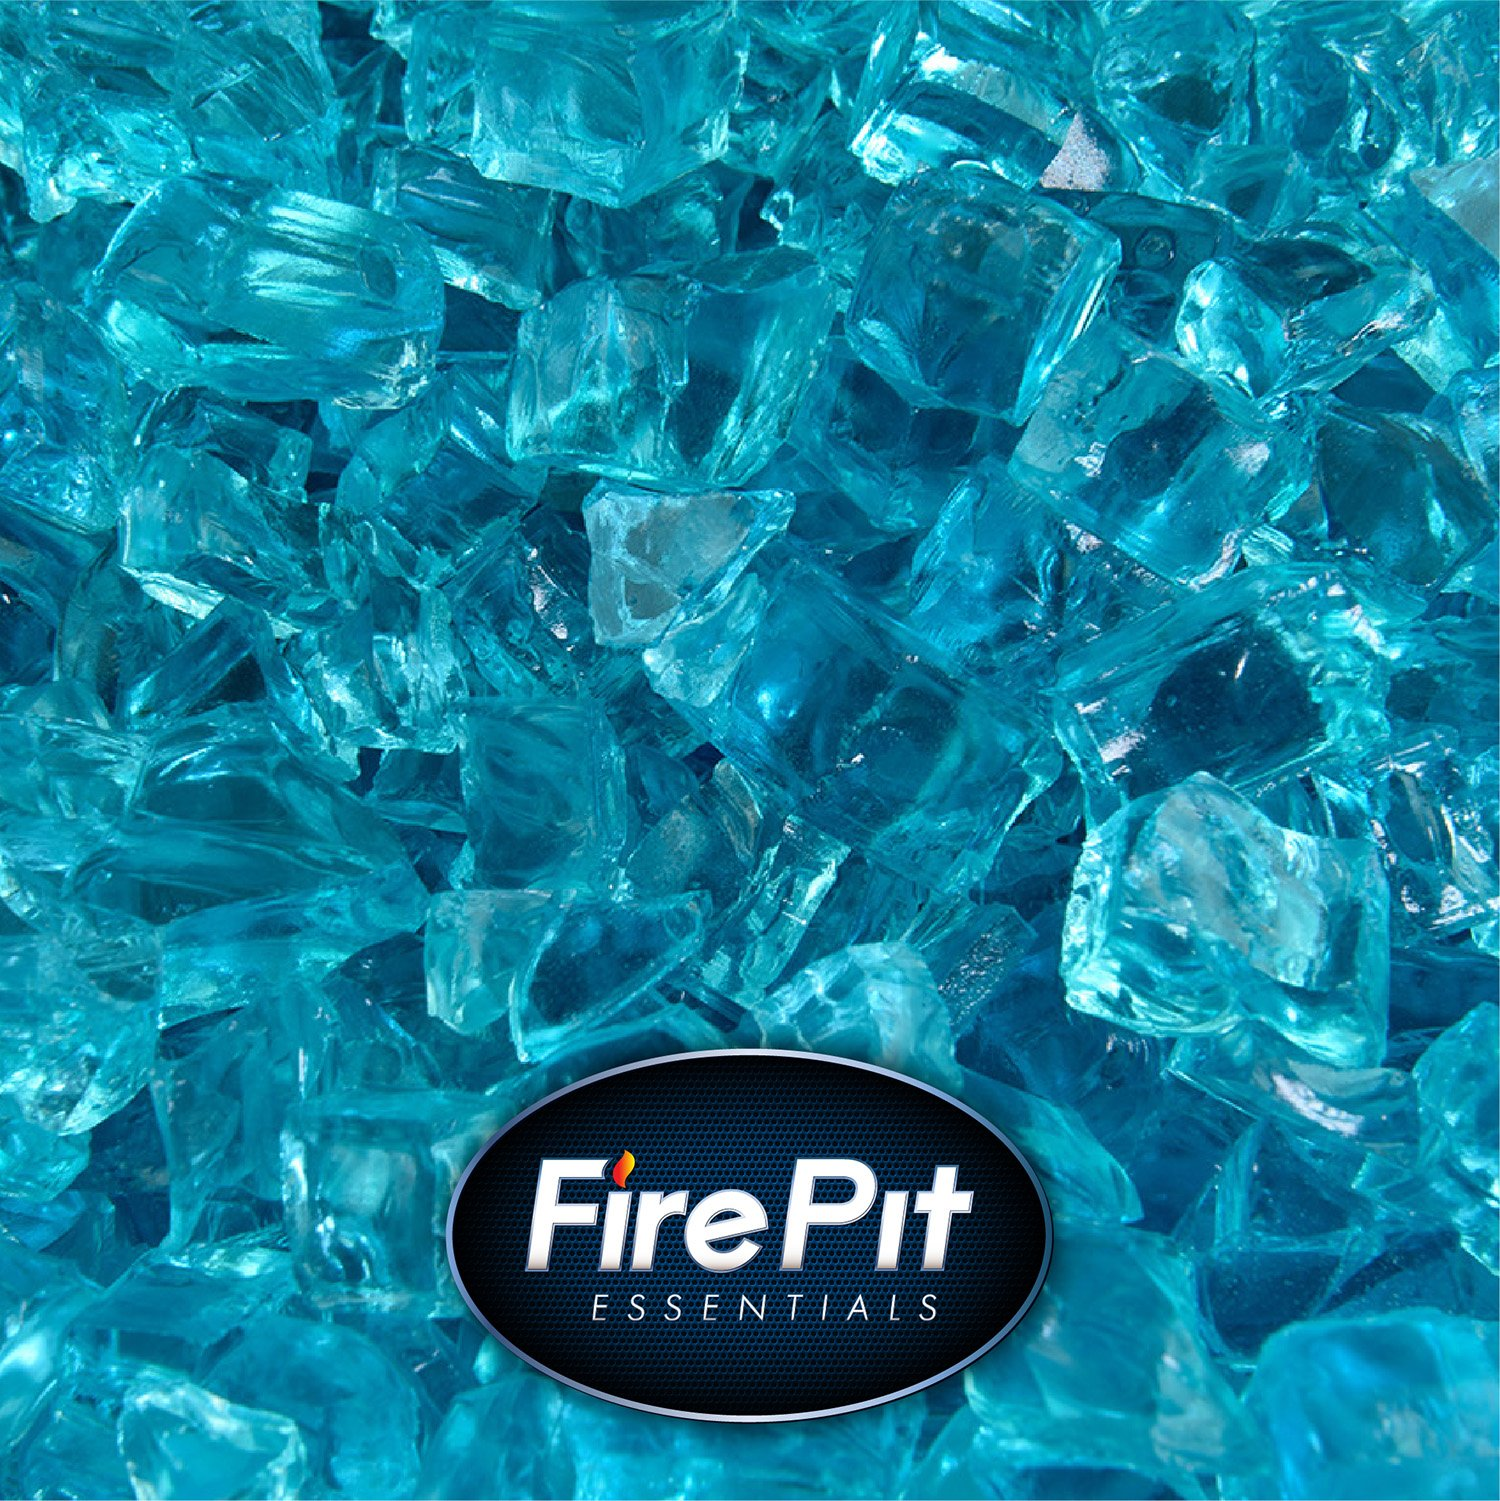 Blue Fire Glass for Indoor and Outdoor Fire Pits or Fireplaces | 10 Pounds | Tahitian Blue Original Glass, 1/2 Inch